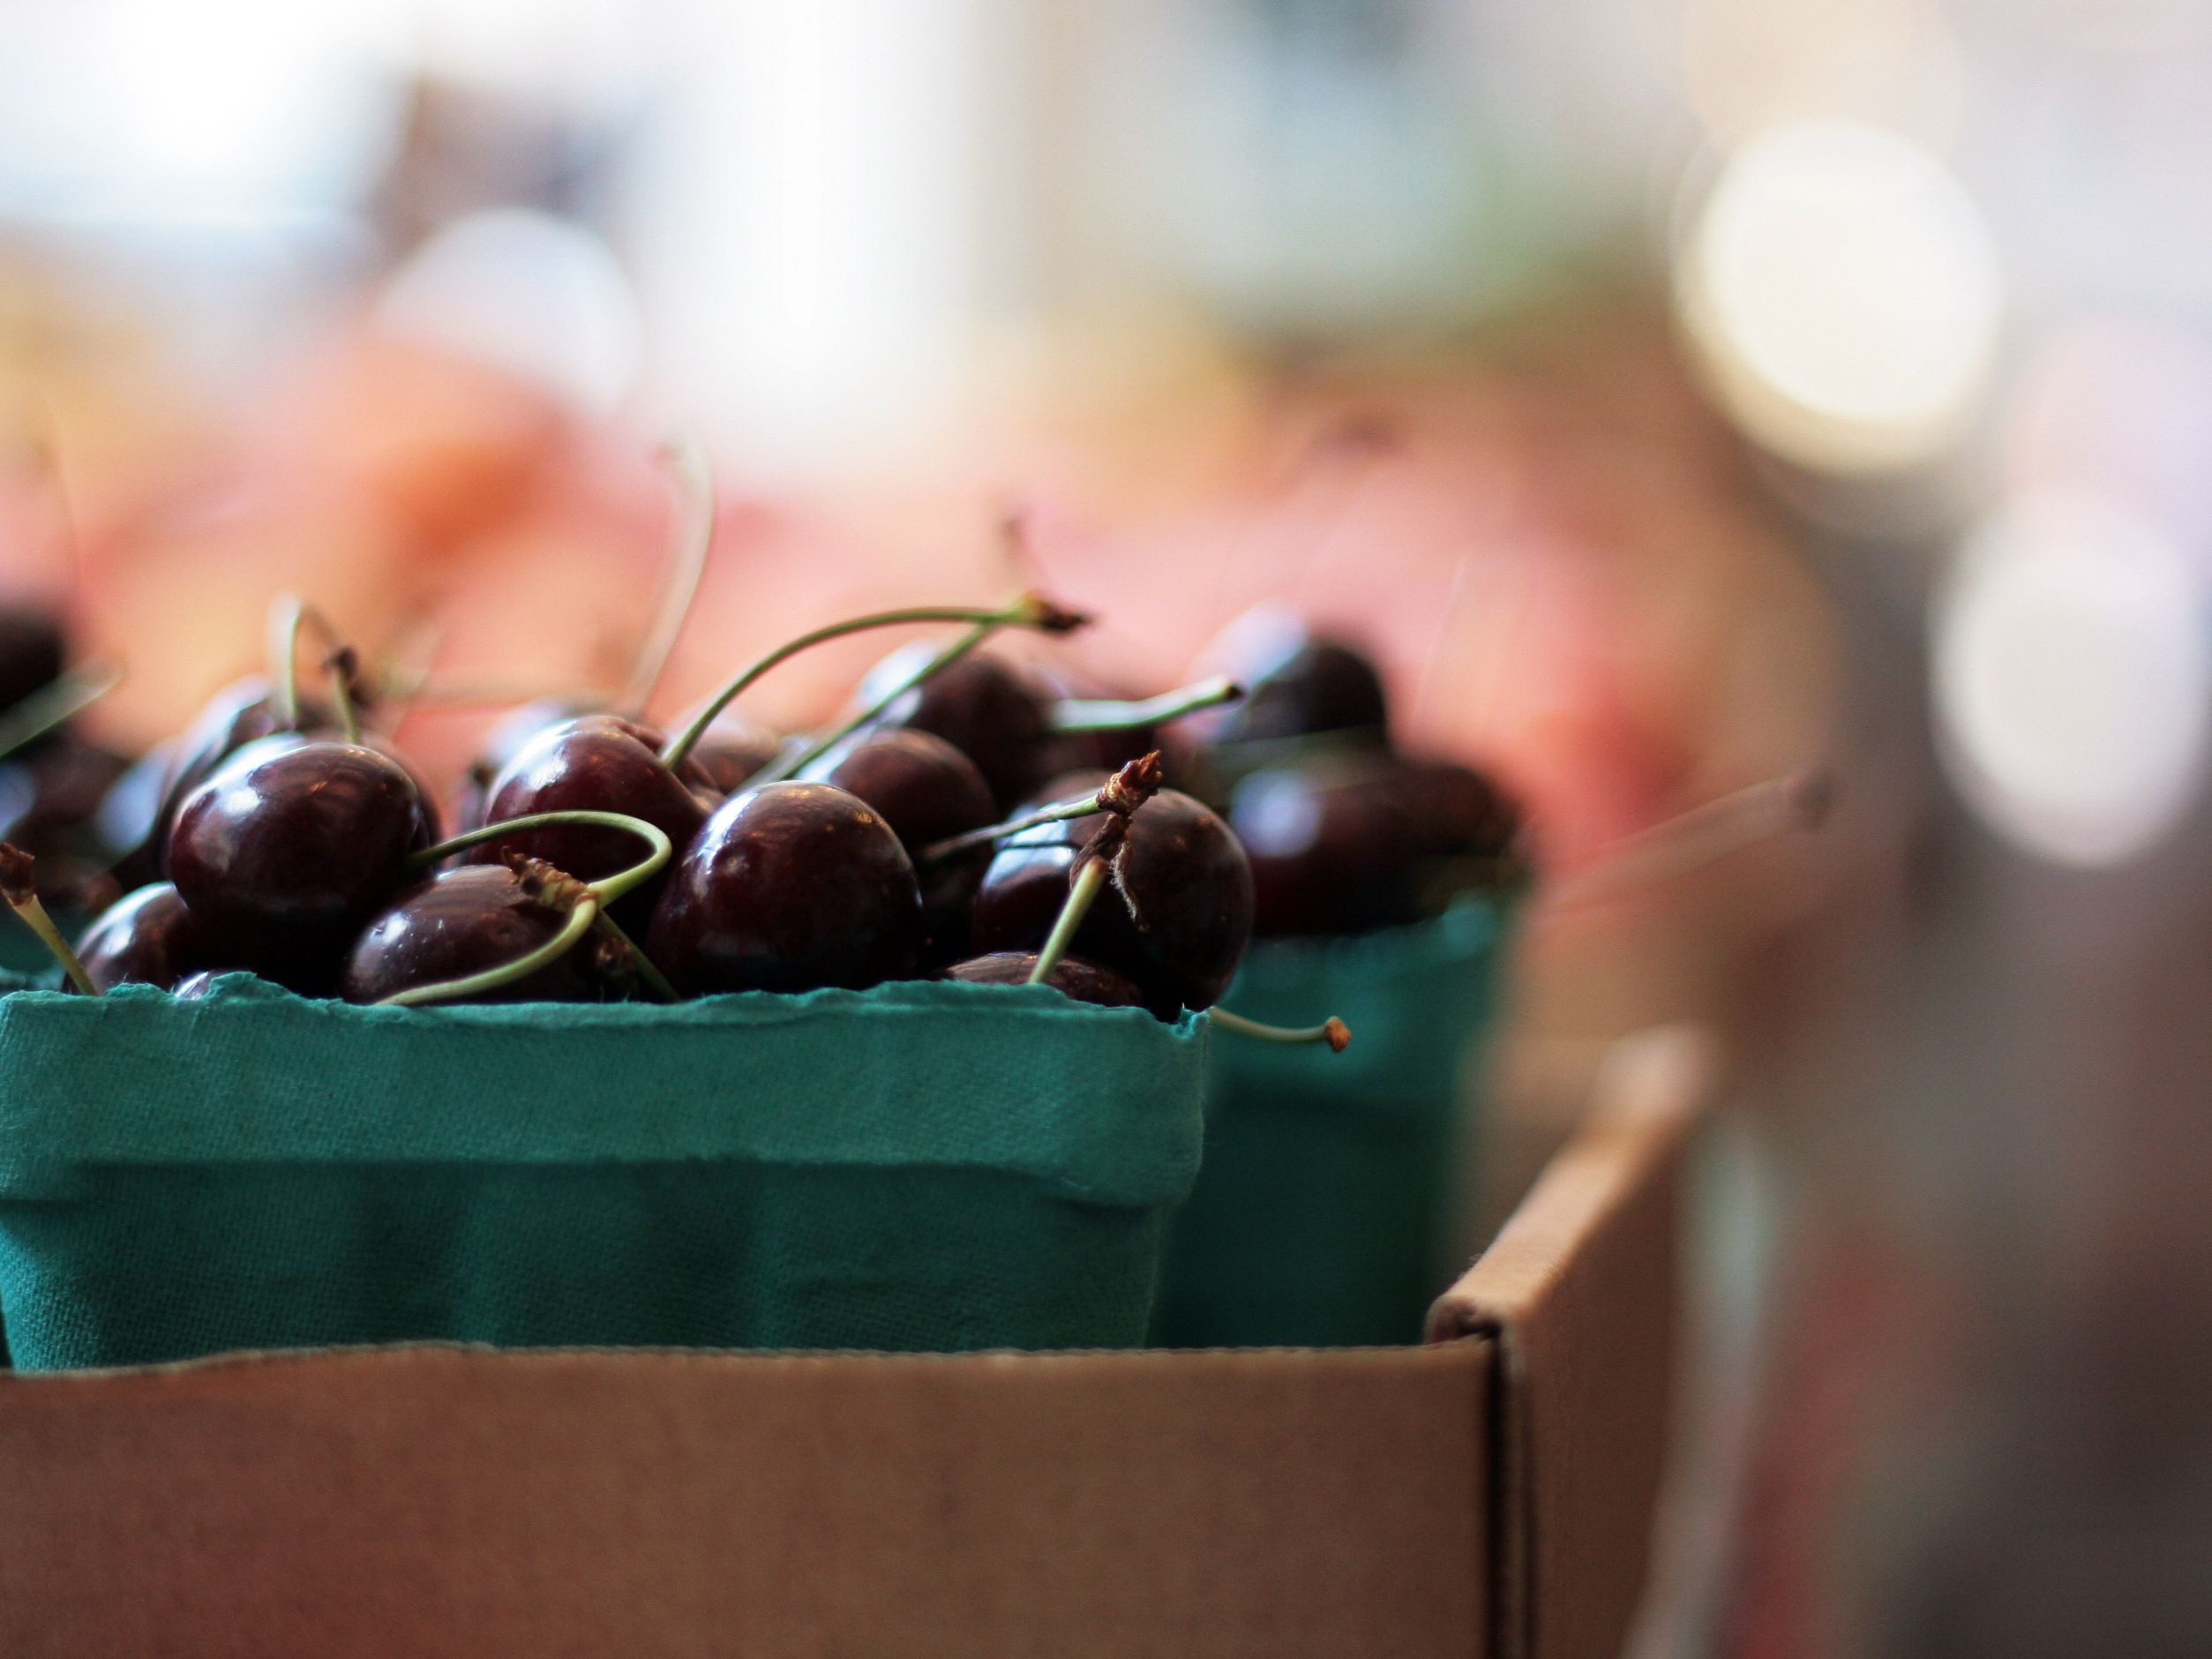 Black Cherries: Benefits, Side Effects, Dosage, and Interactions